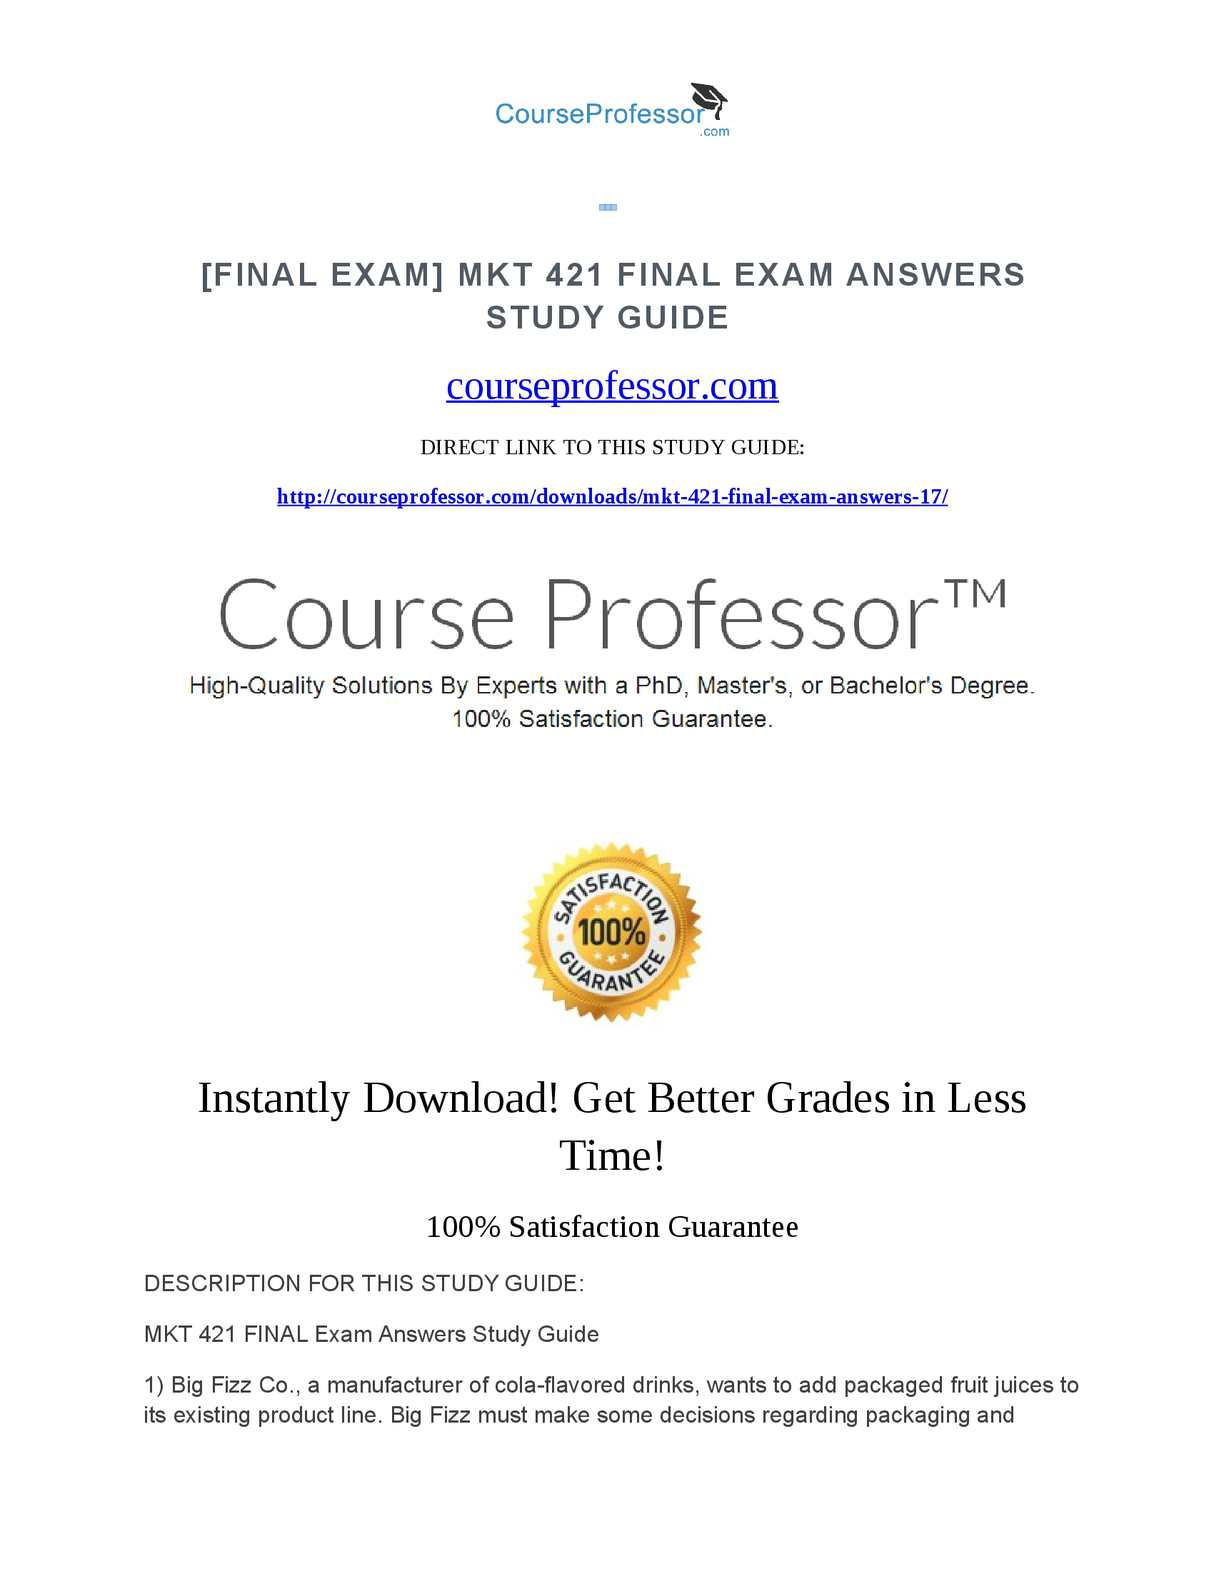 a sample of the final student exam